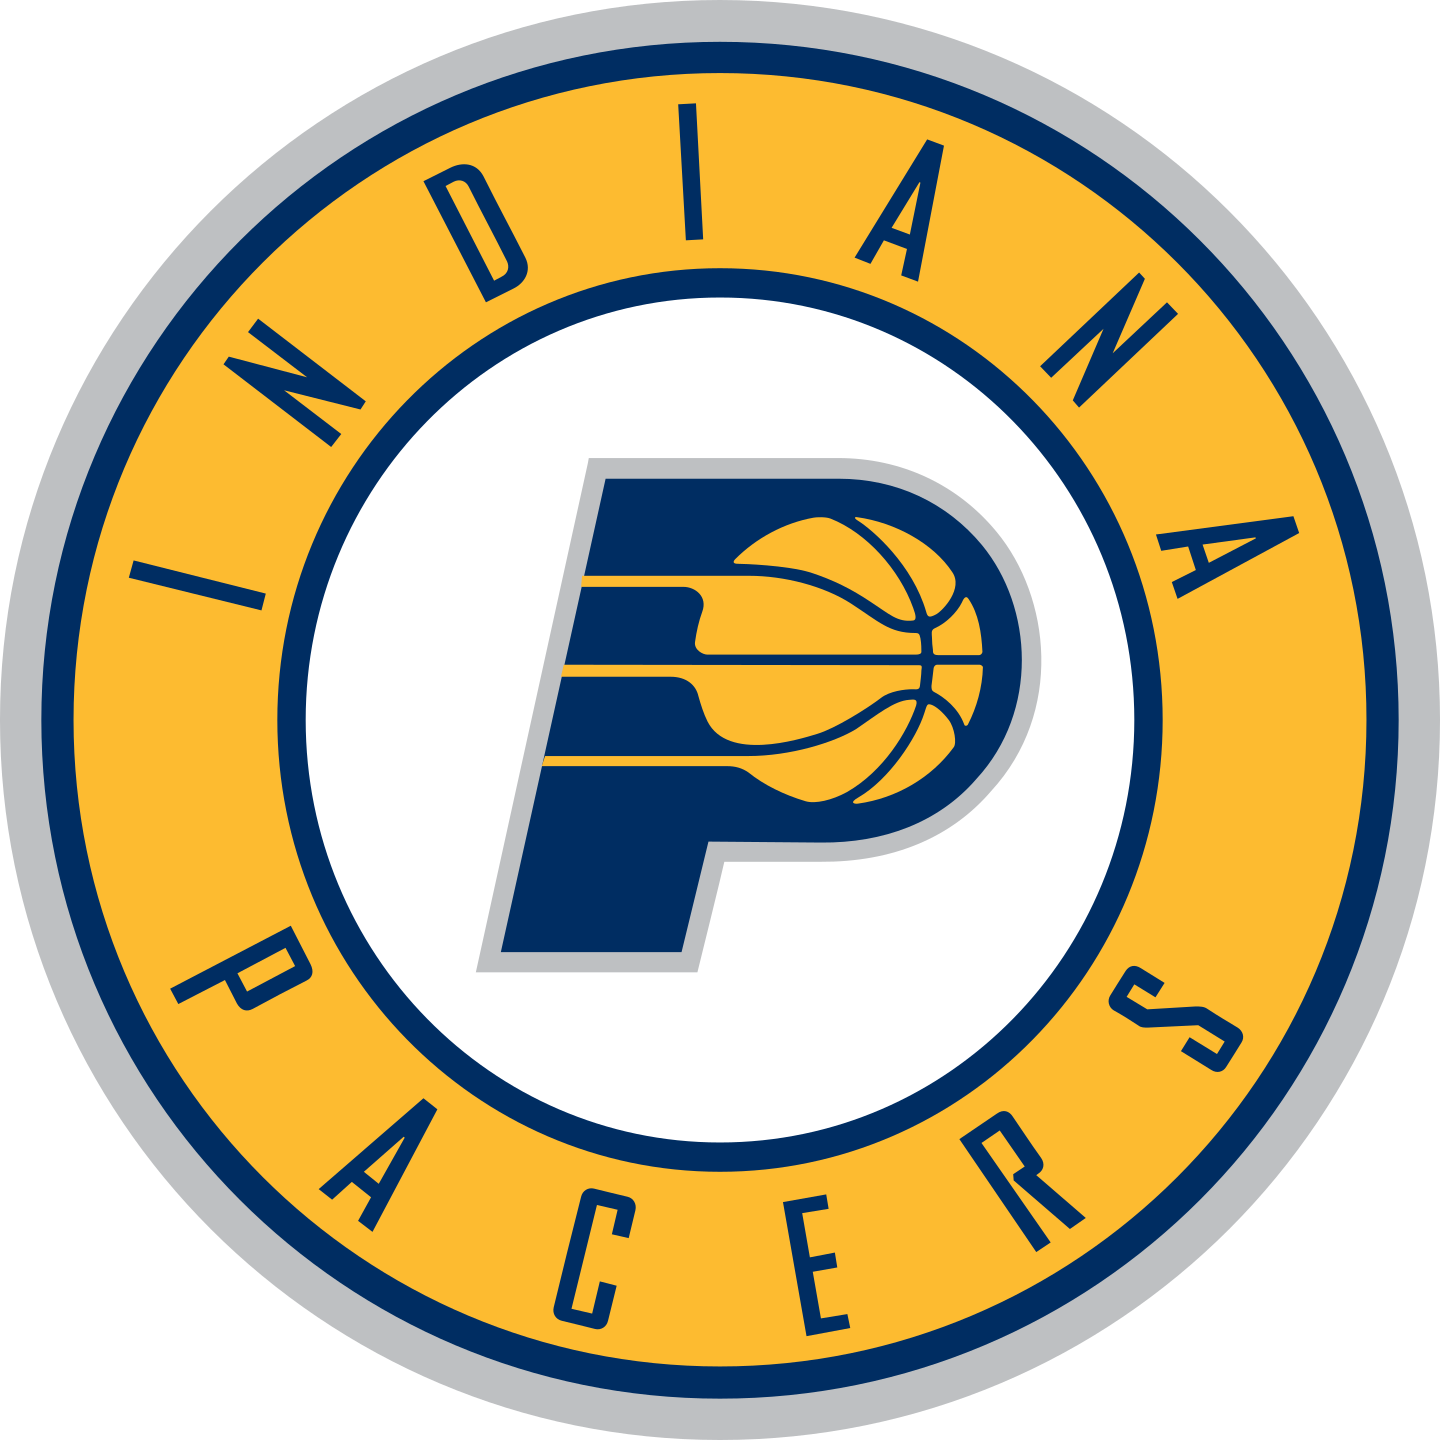 indiana pacers logo 3 - Indiana Pacers Logo